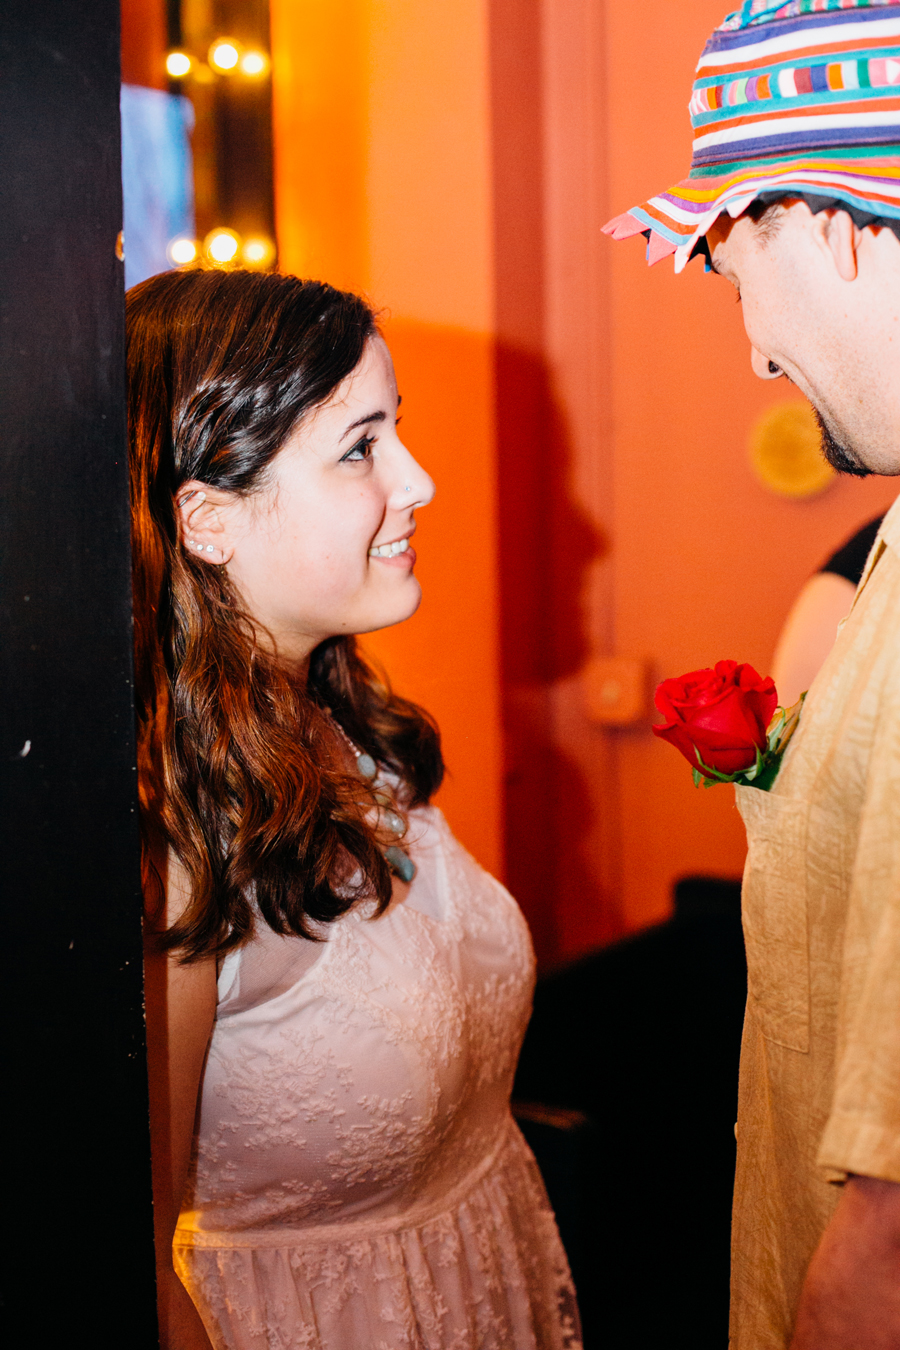 006-temple-bar-bellingham-washington-elopement-ceremony-katheryn-moran-photography.jpg